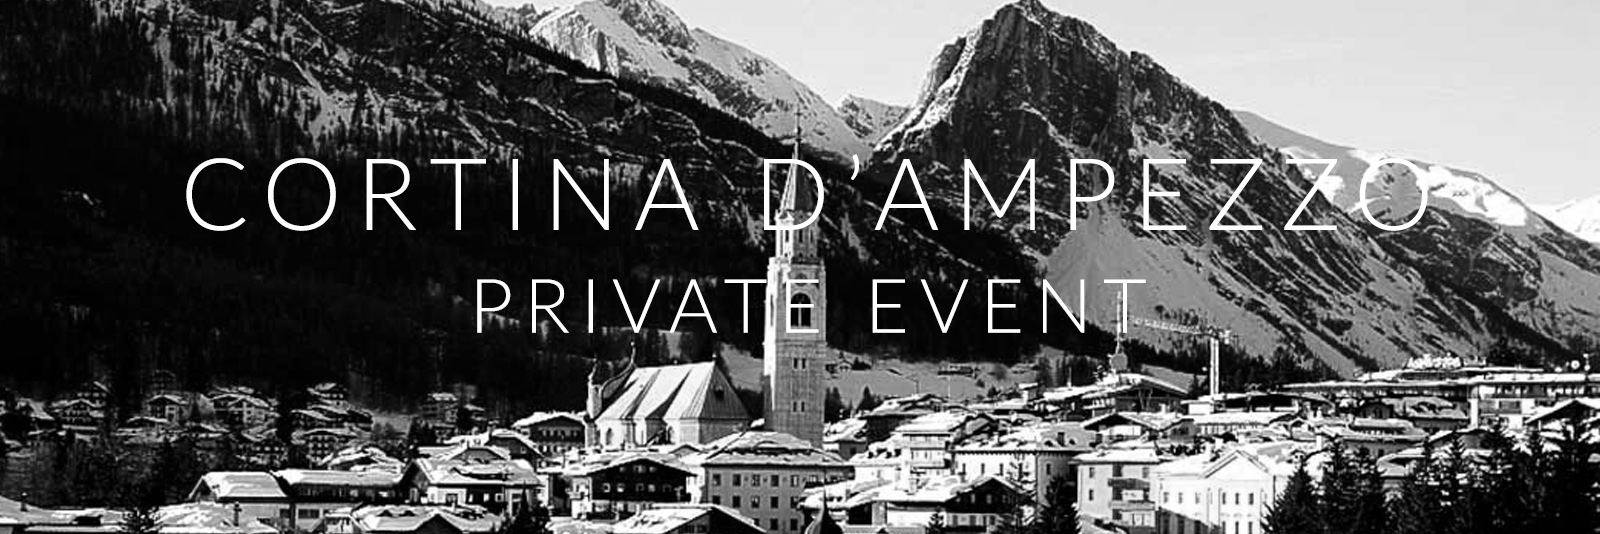 Private event in CORTINA D'AMPEZZO